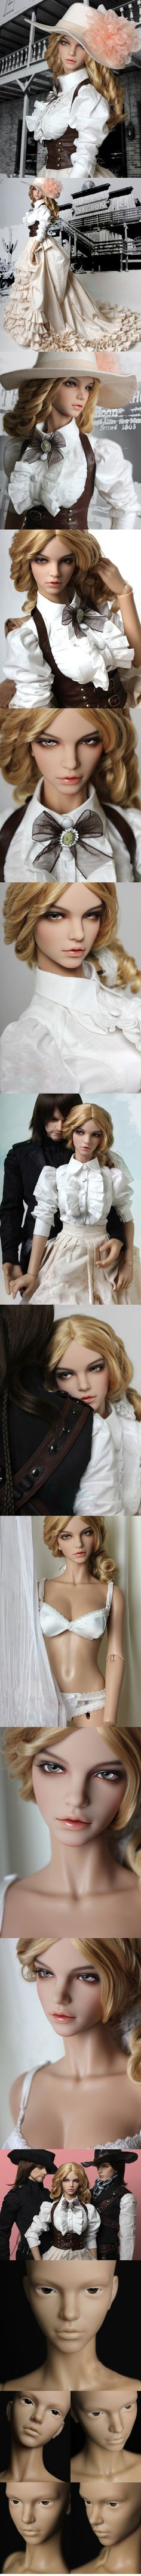 iplehouse Bibiane [Bibiane_Special Edition] - $199.00 : BJD baby,bjd dolls,bjd doll shop,bjd bragan?a,fairyland,volks bjd,soom,luts bjd,Super Dollfie, BJD lovers collect community